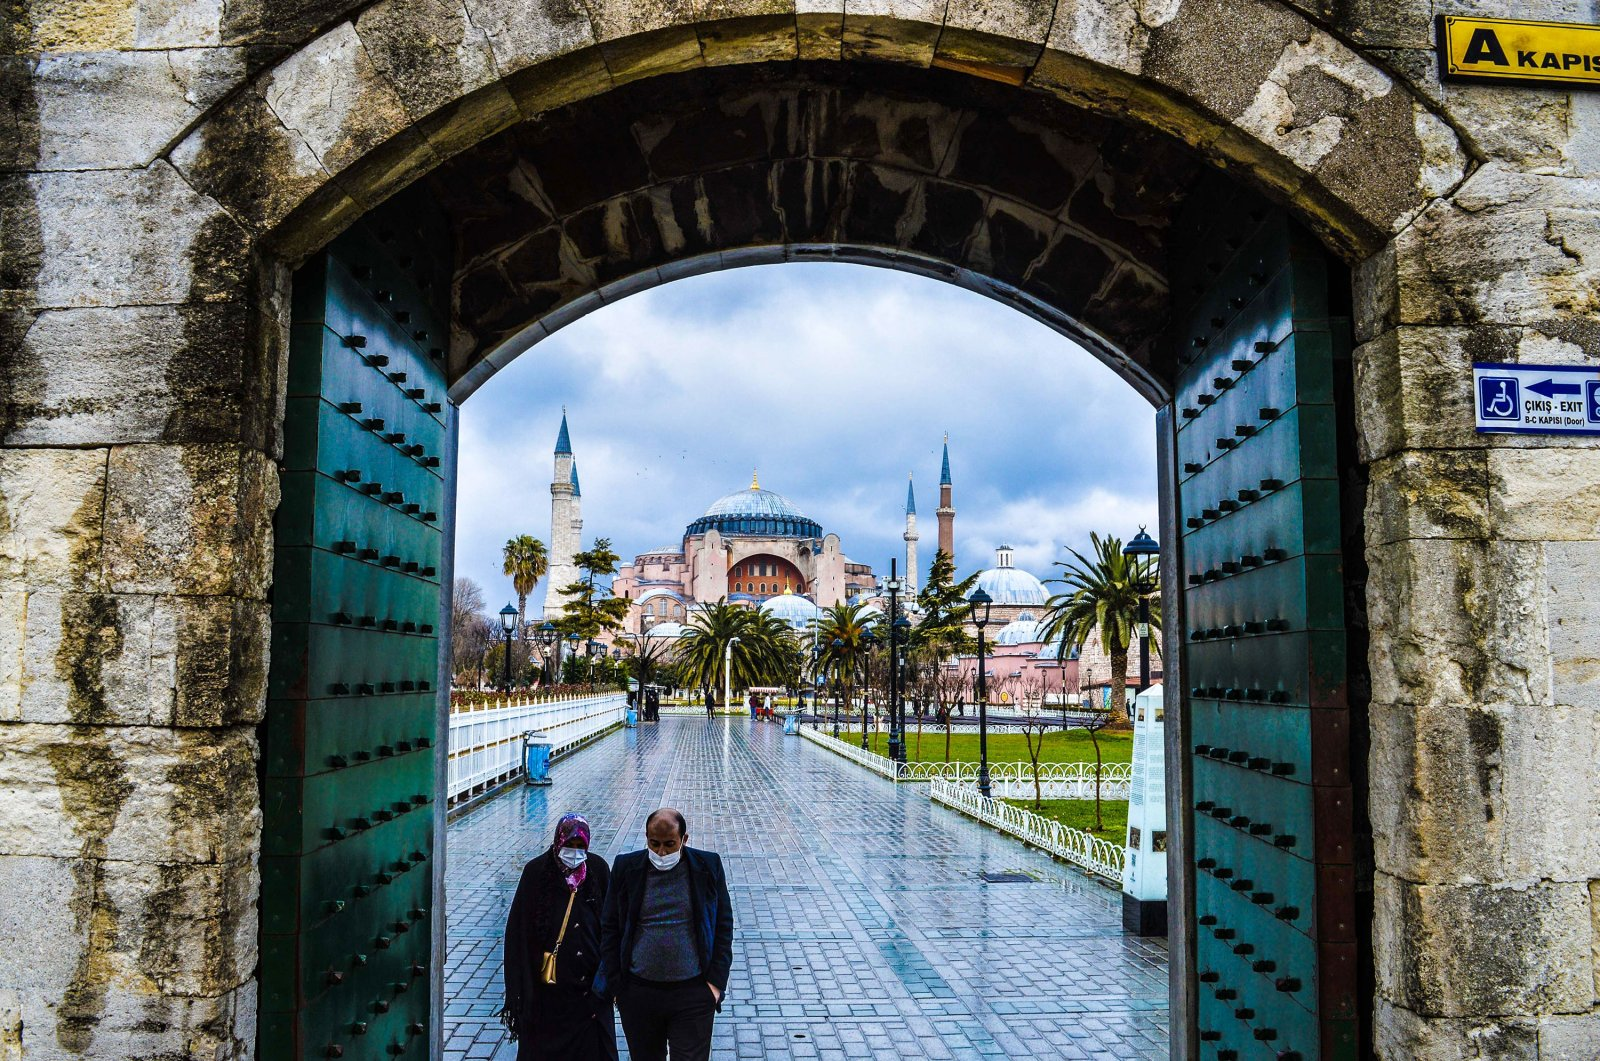 People walk towards the Blue Mosque as Hagia Sophia Grand Mosque is seen in the background in Istanbul, Turkey, March 2, 2021. (Getty Images)